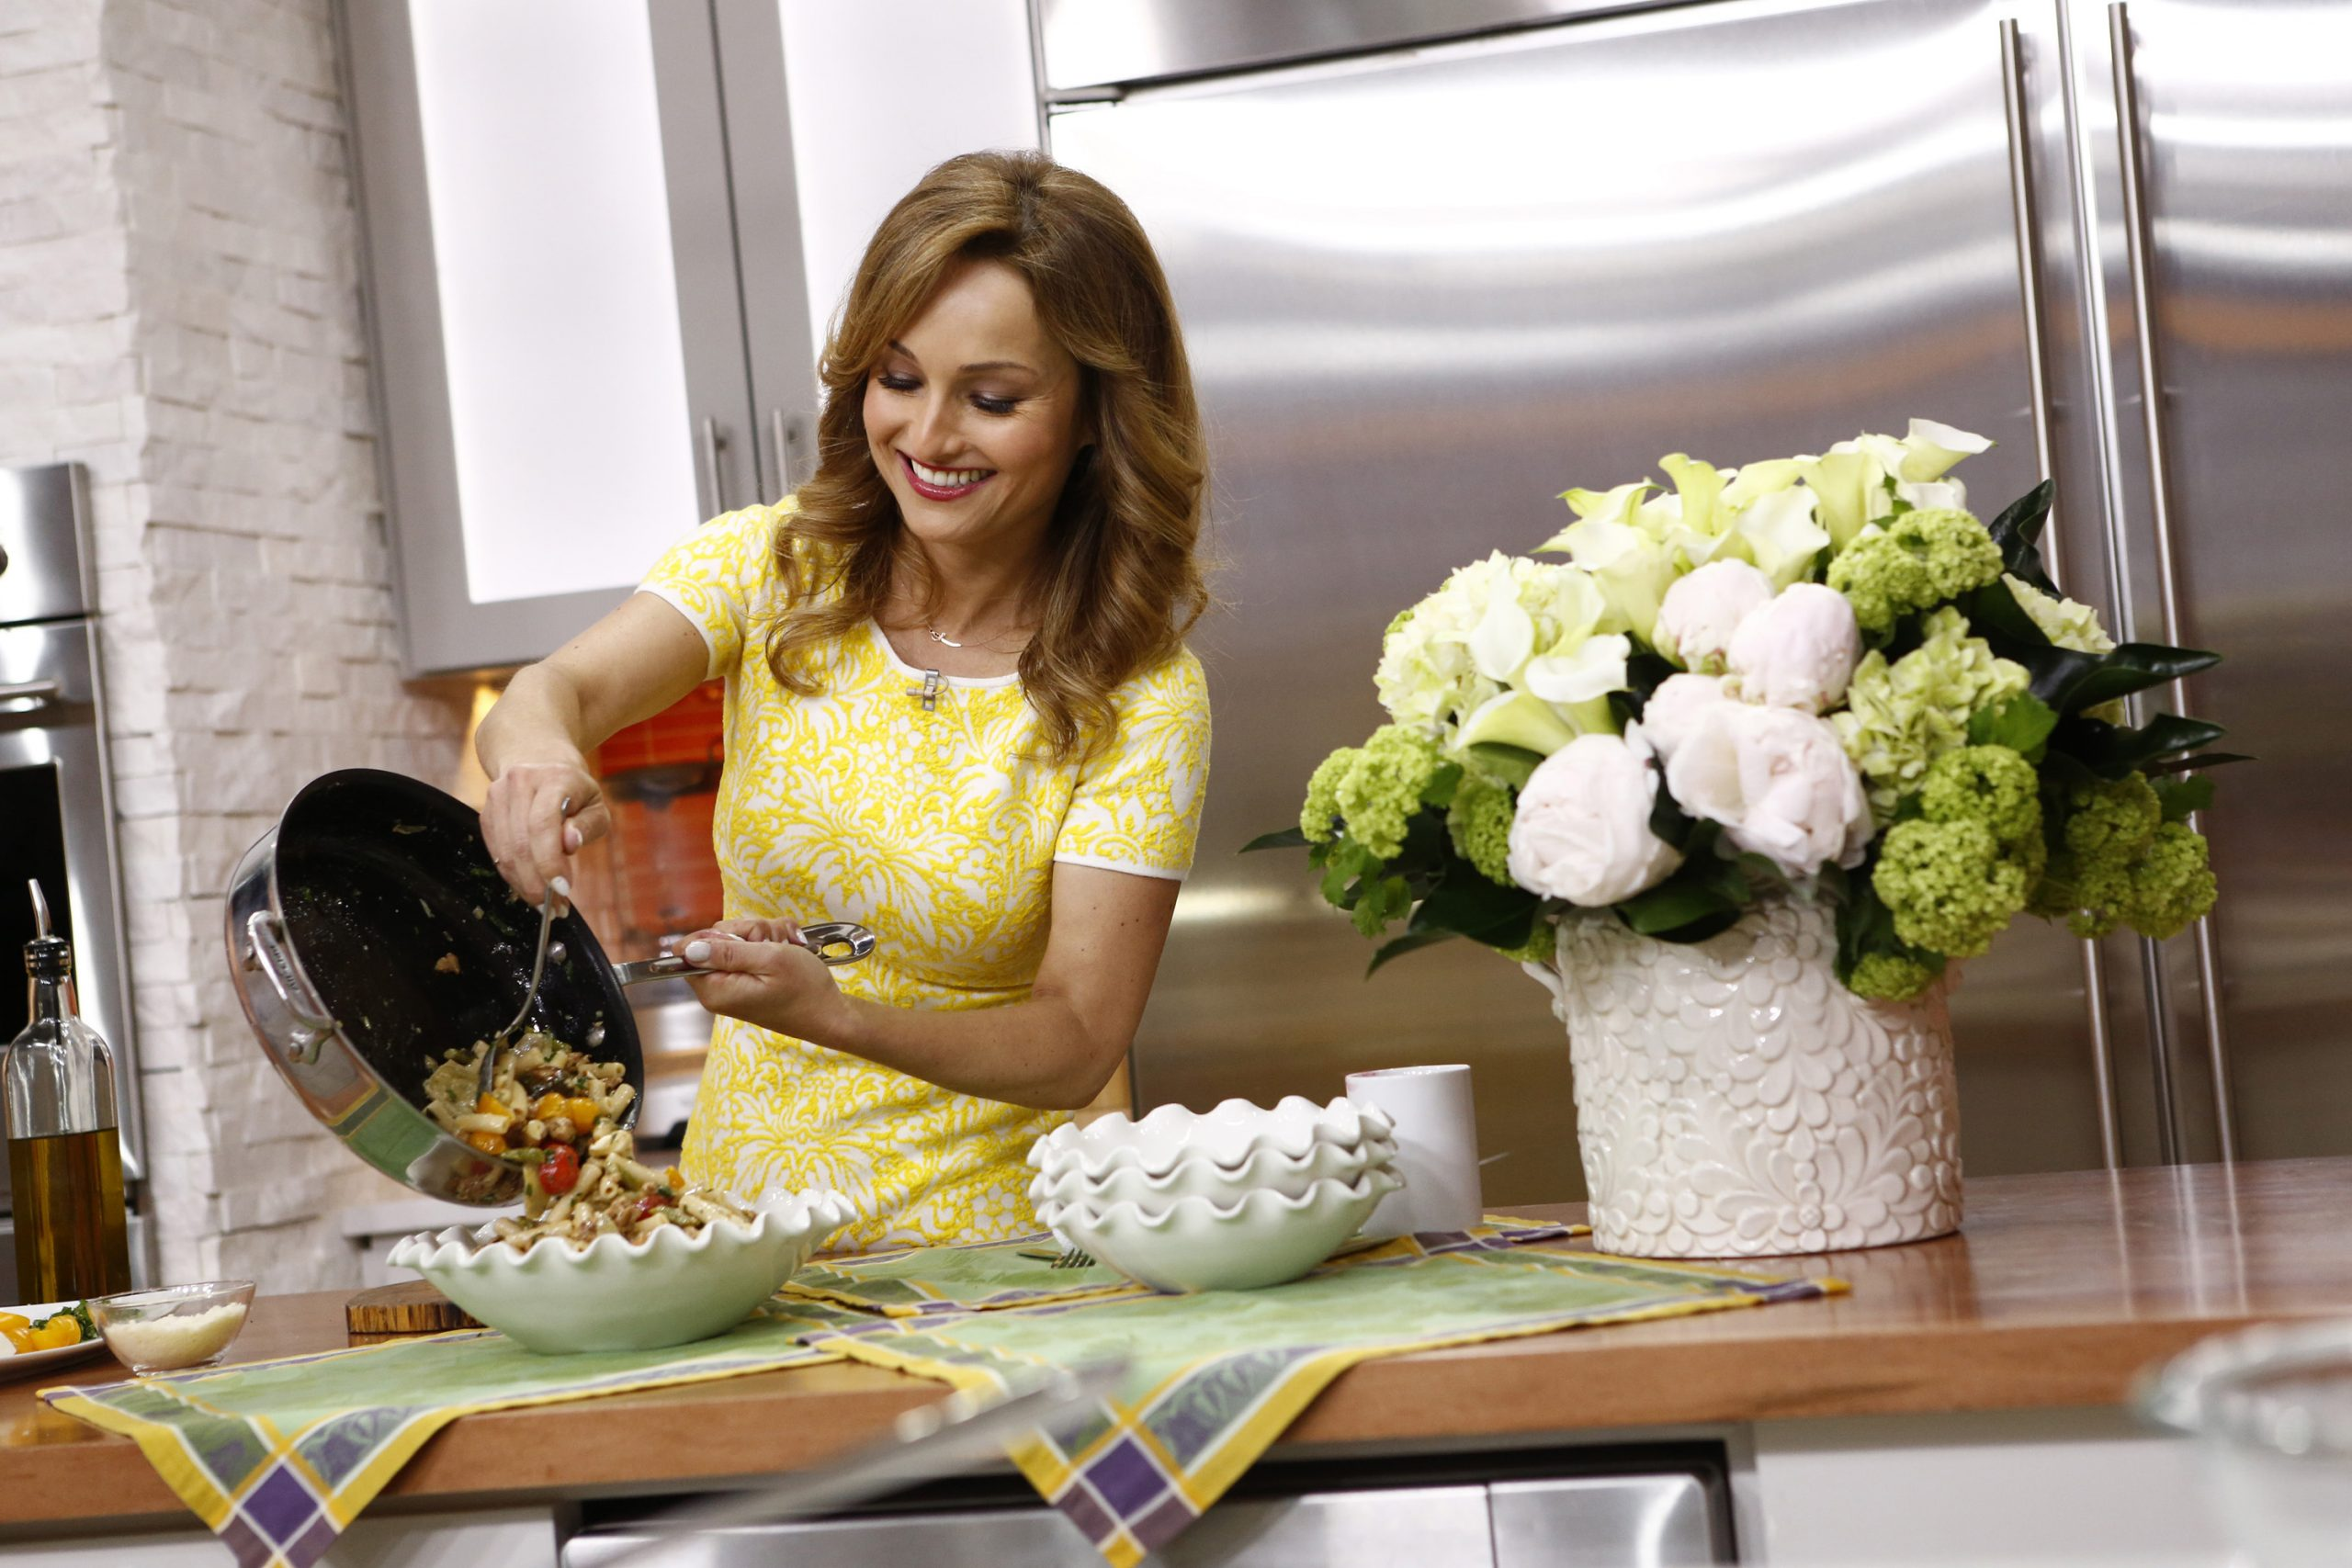 Food Network television personality Giada De Laurentiis appears on 'Today' in 2014